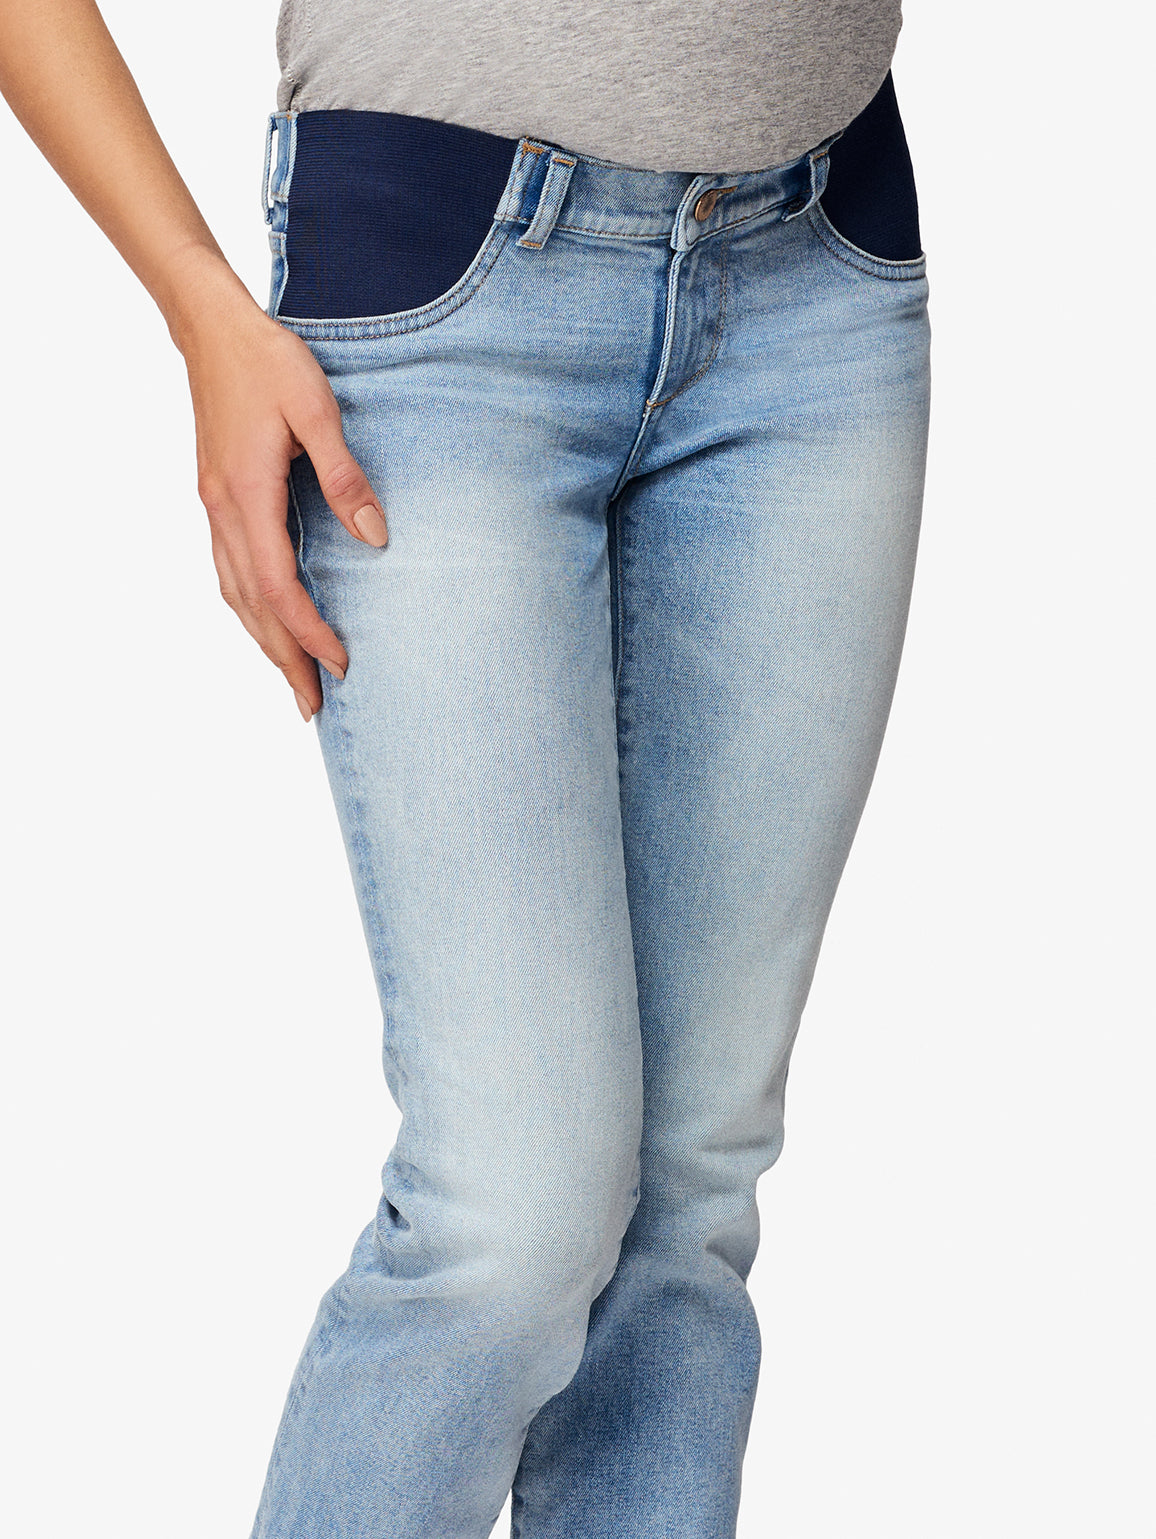 Mara Maternity Straight Ankle | Promenade DL 1961 Denim